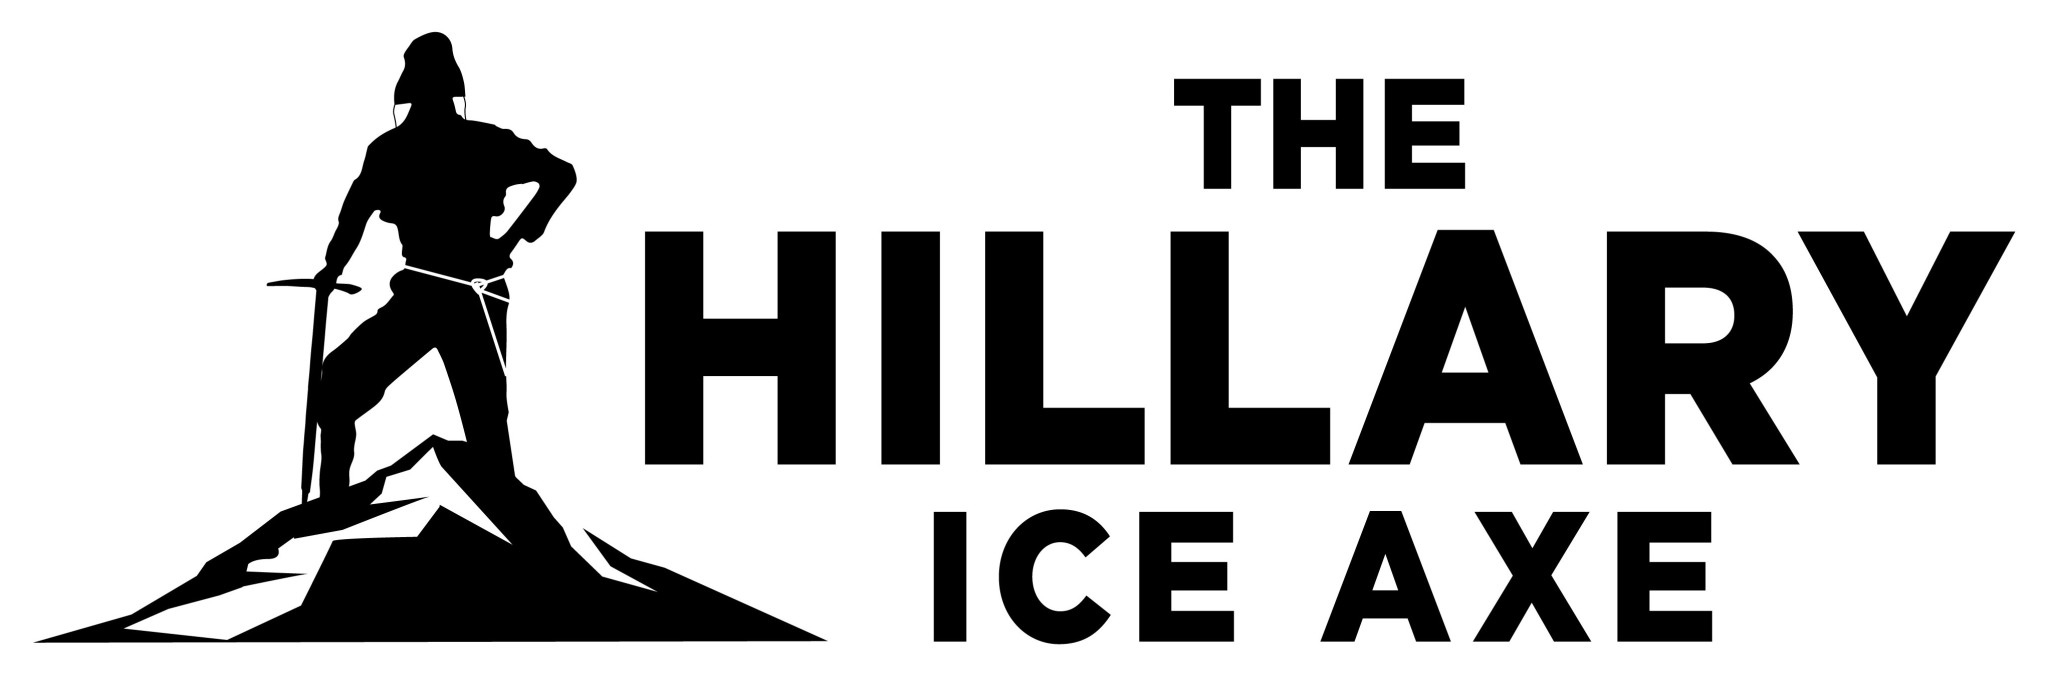 The Hillary Ice Axe